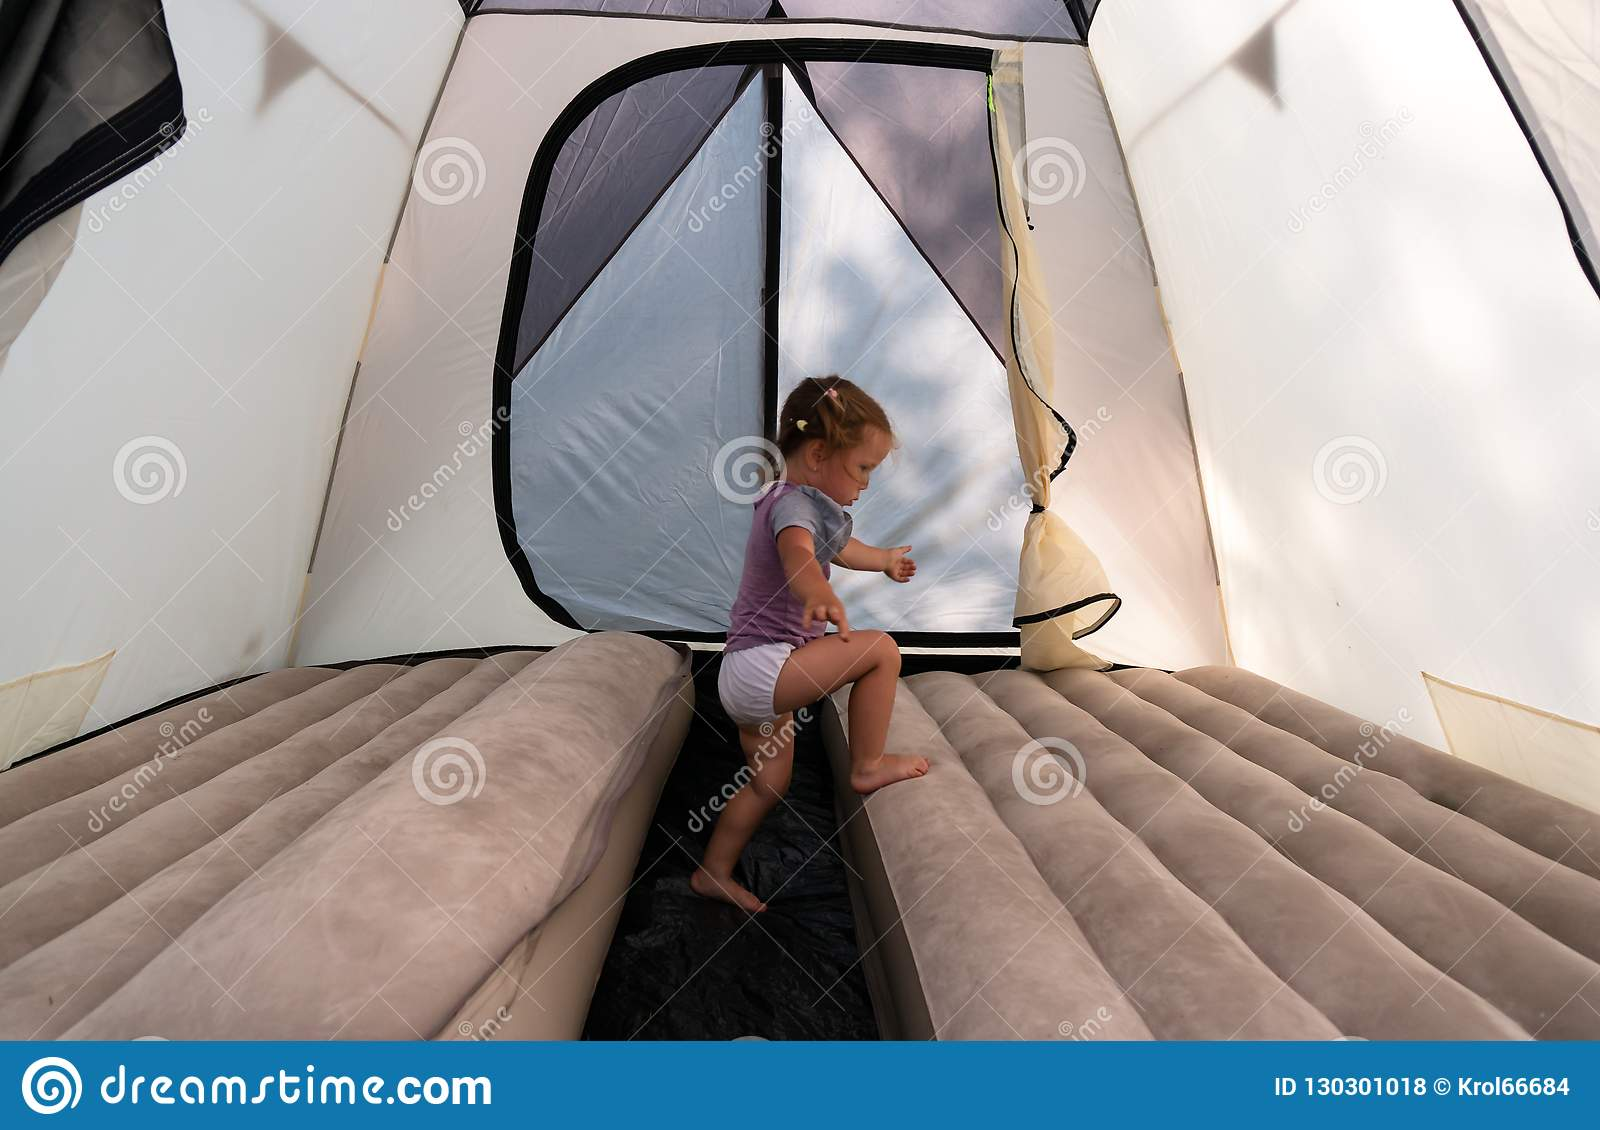 At the campsite, a little girl in a tent jumps on mattresses.